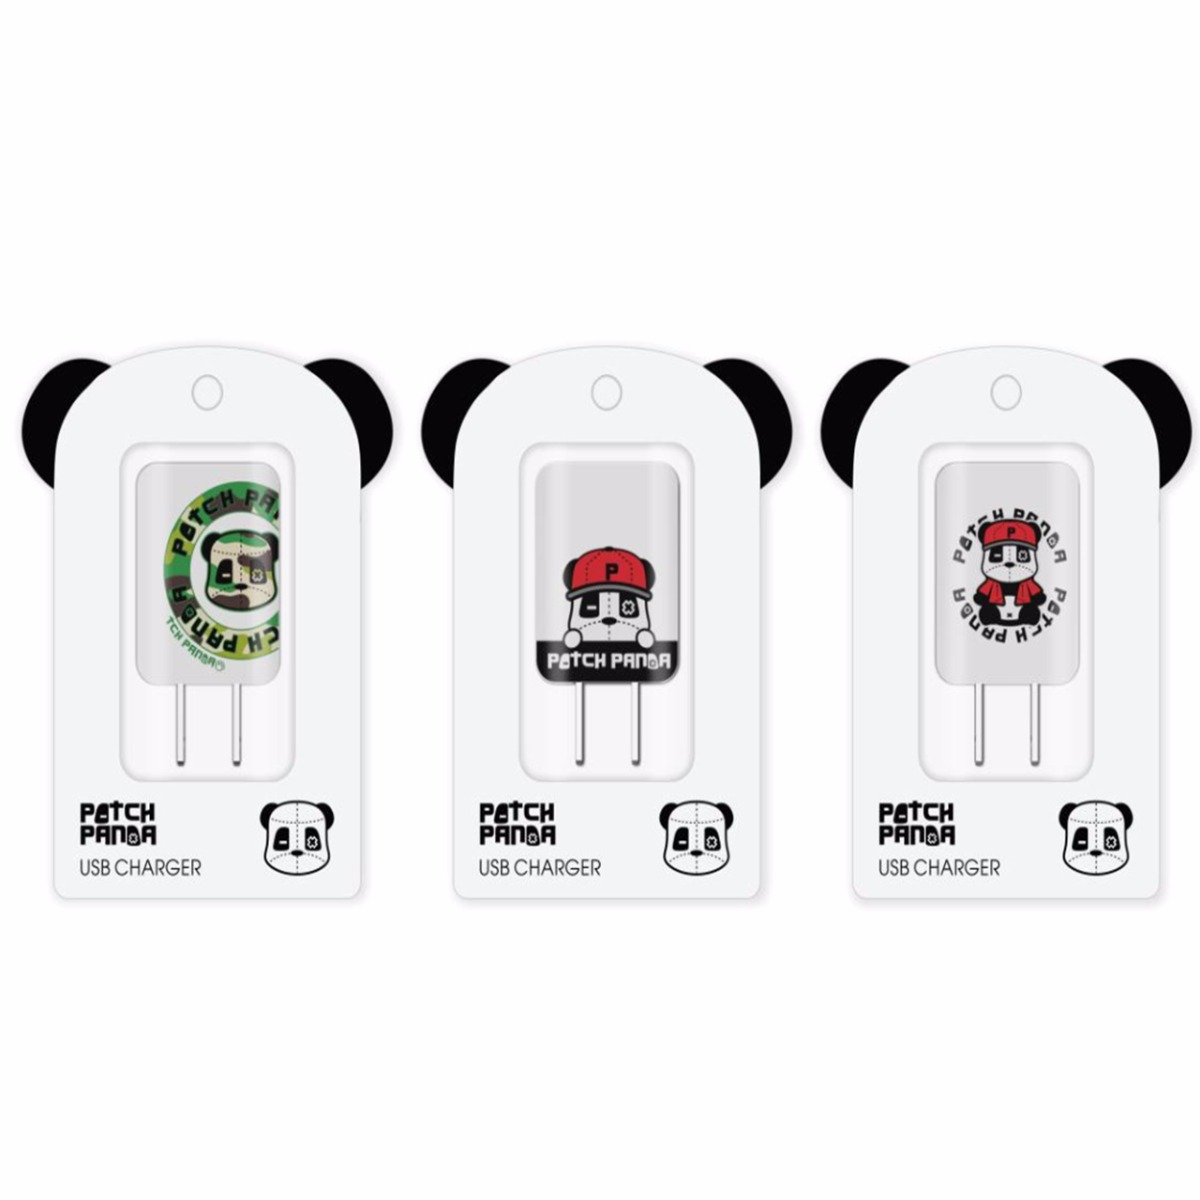 Patch Panda 1U USB Charger Adapter for Mobile Phone